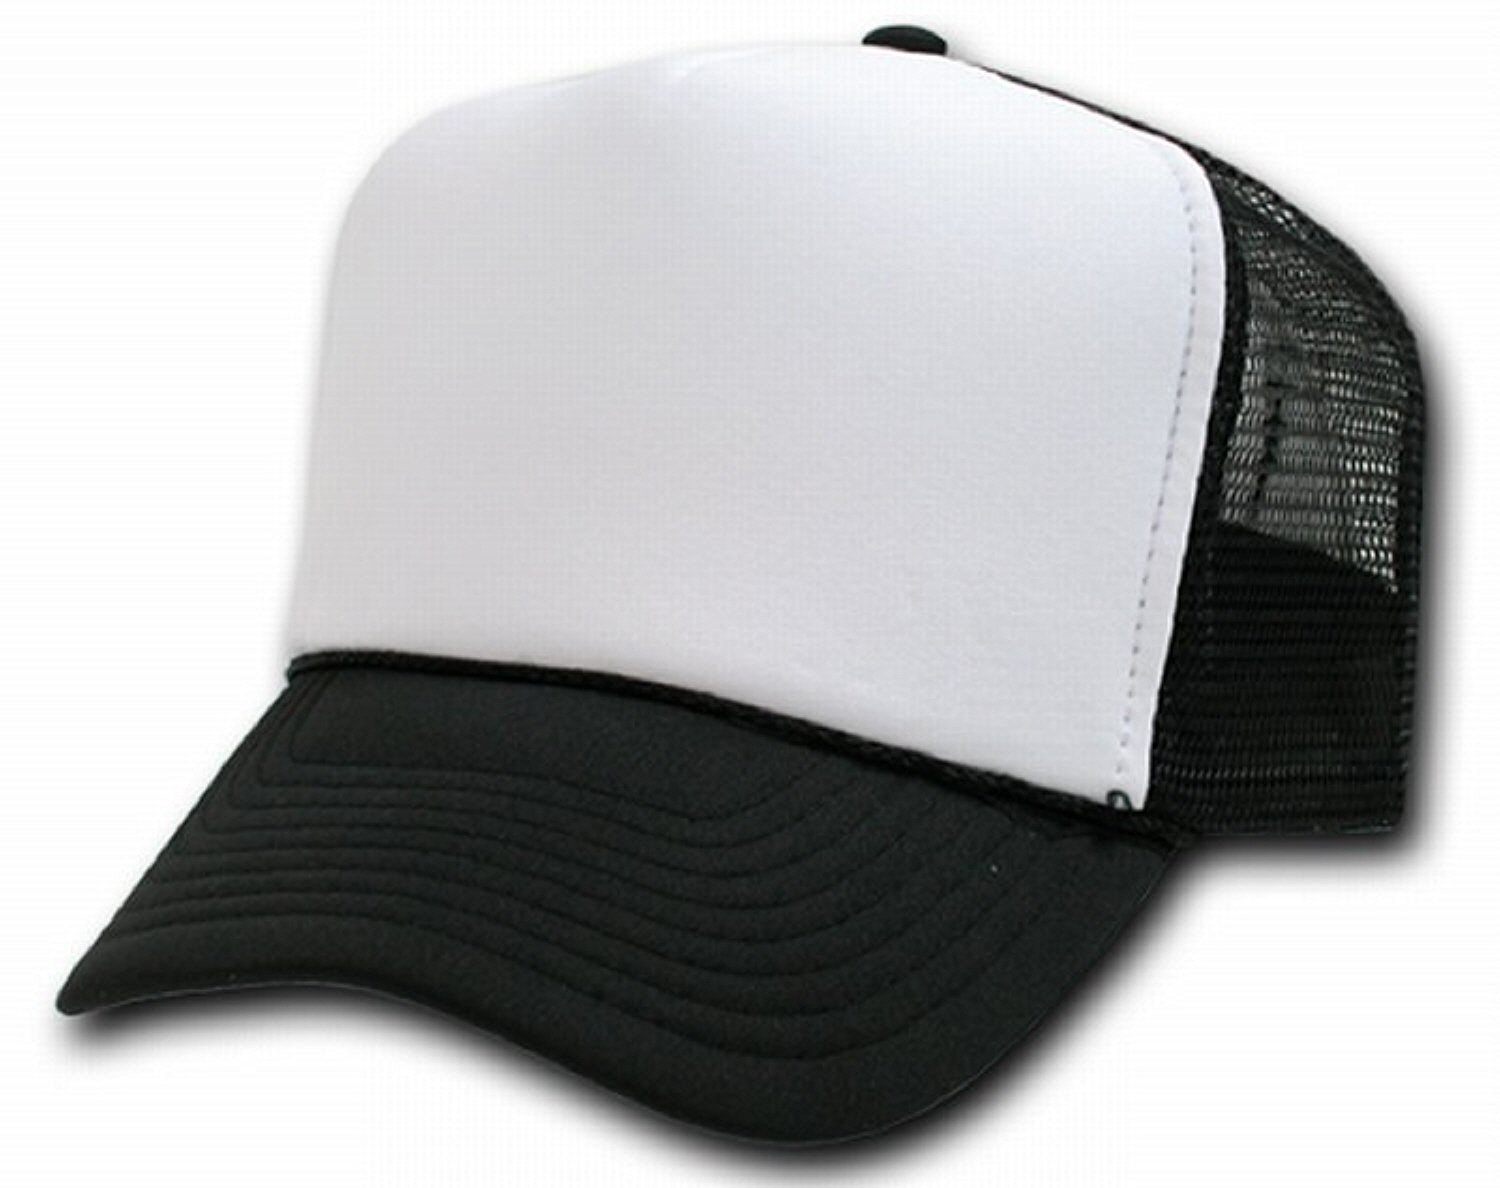 Amazon pluspng.com: DECKY Two Tone Trucker Mesh Caps Plain Baseball Hat: Clothing - Baseball Hat PNG Front